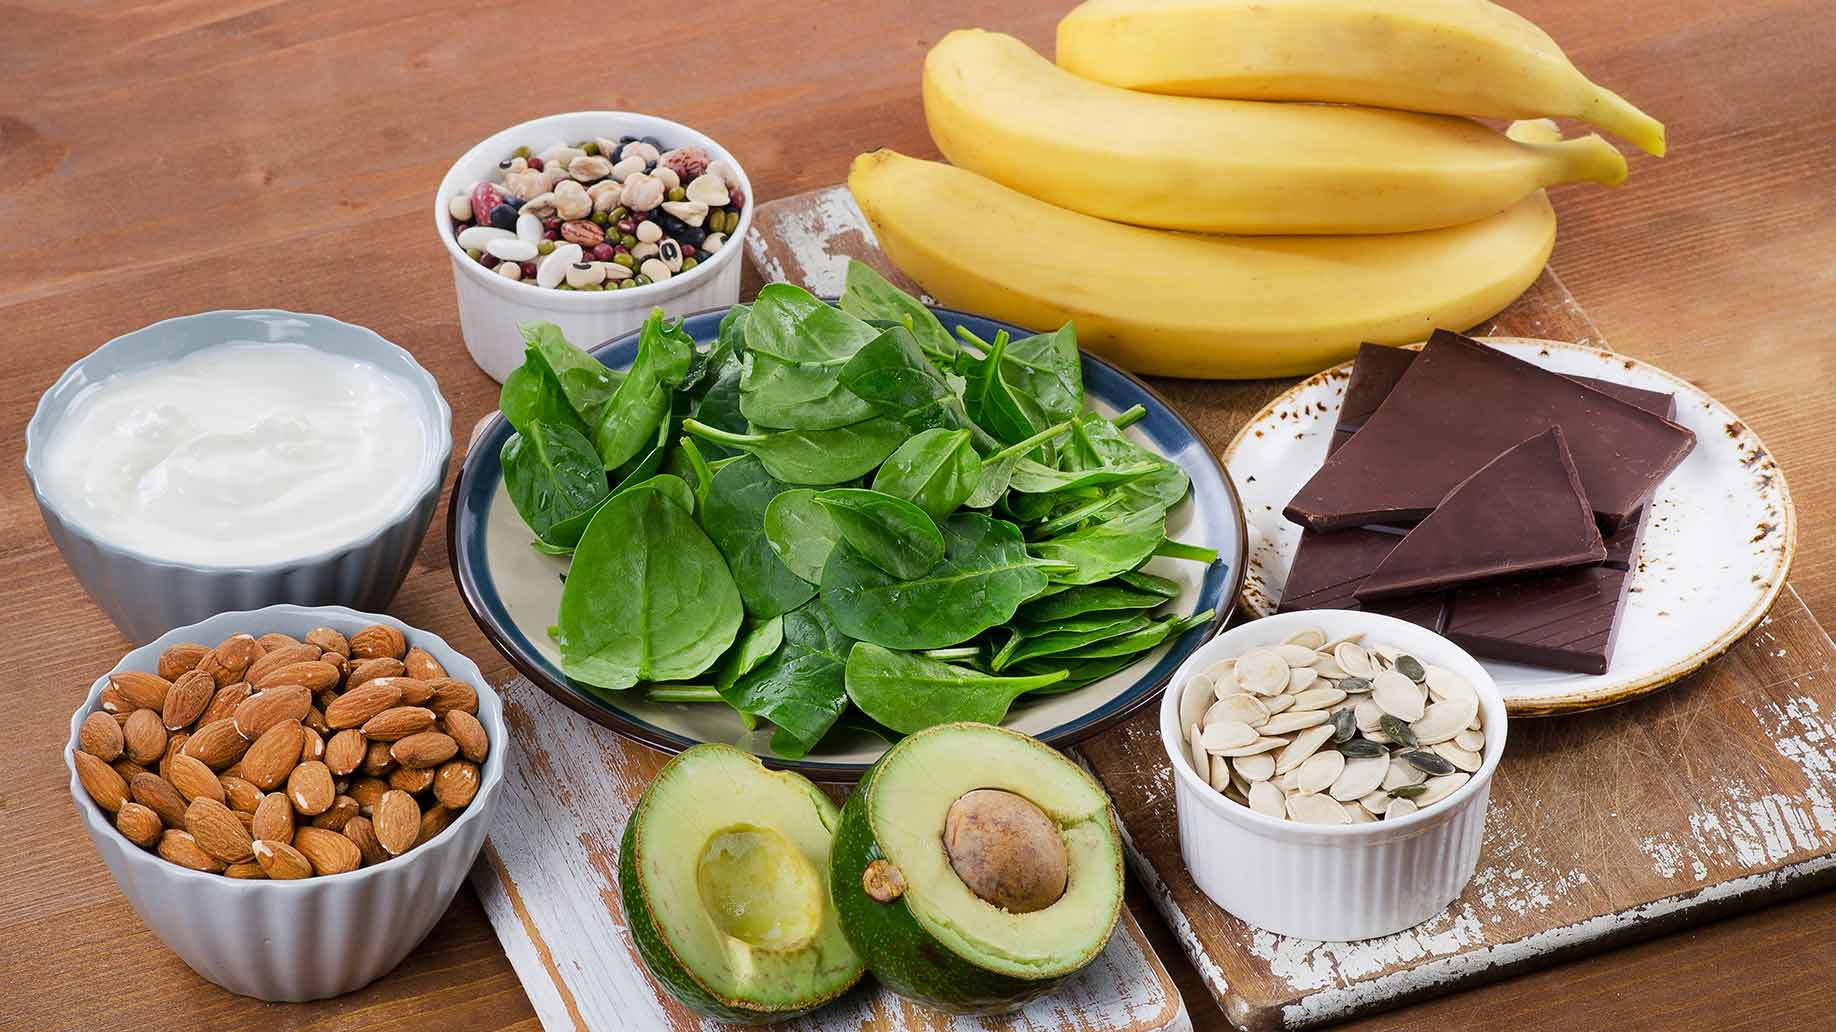 magnesium bananas seeds nuts green leafy vegetables almonds yogurt dark chocolate avocado insomnia sleep disorder natural remedies aid